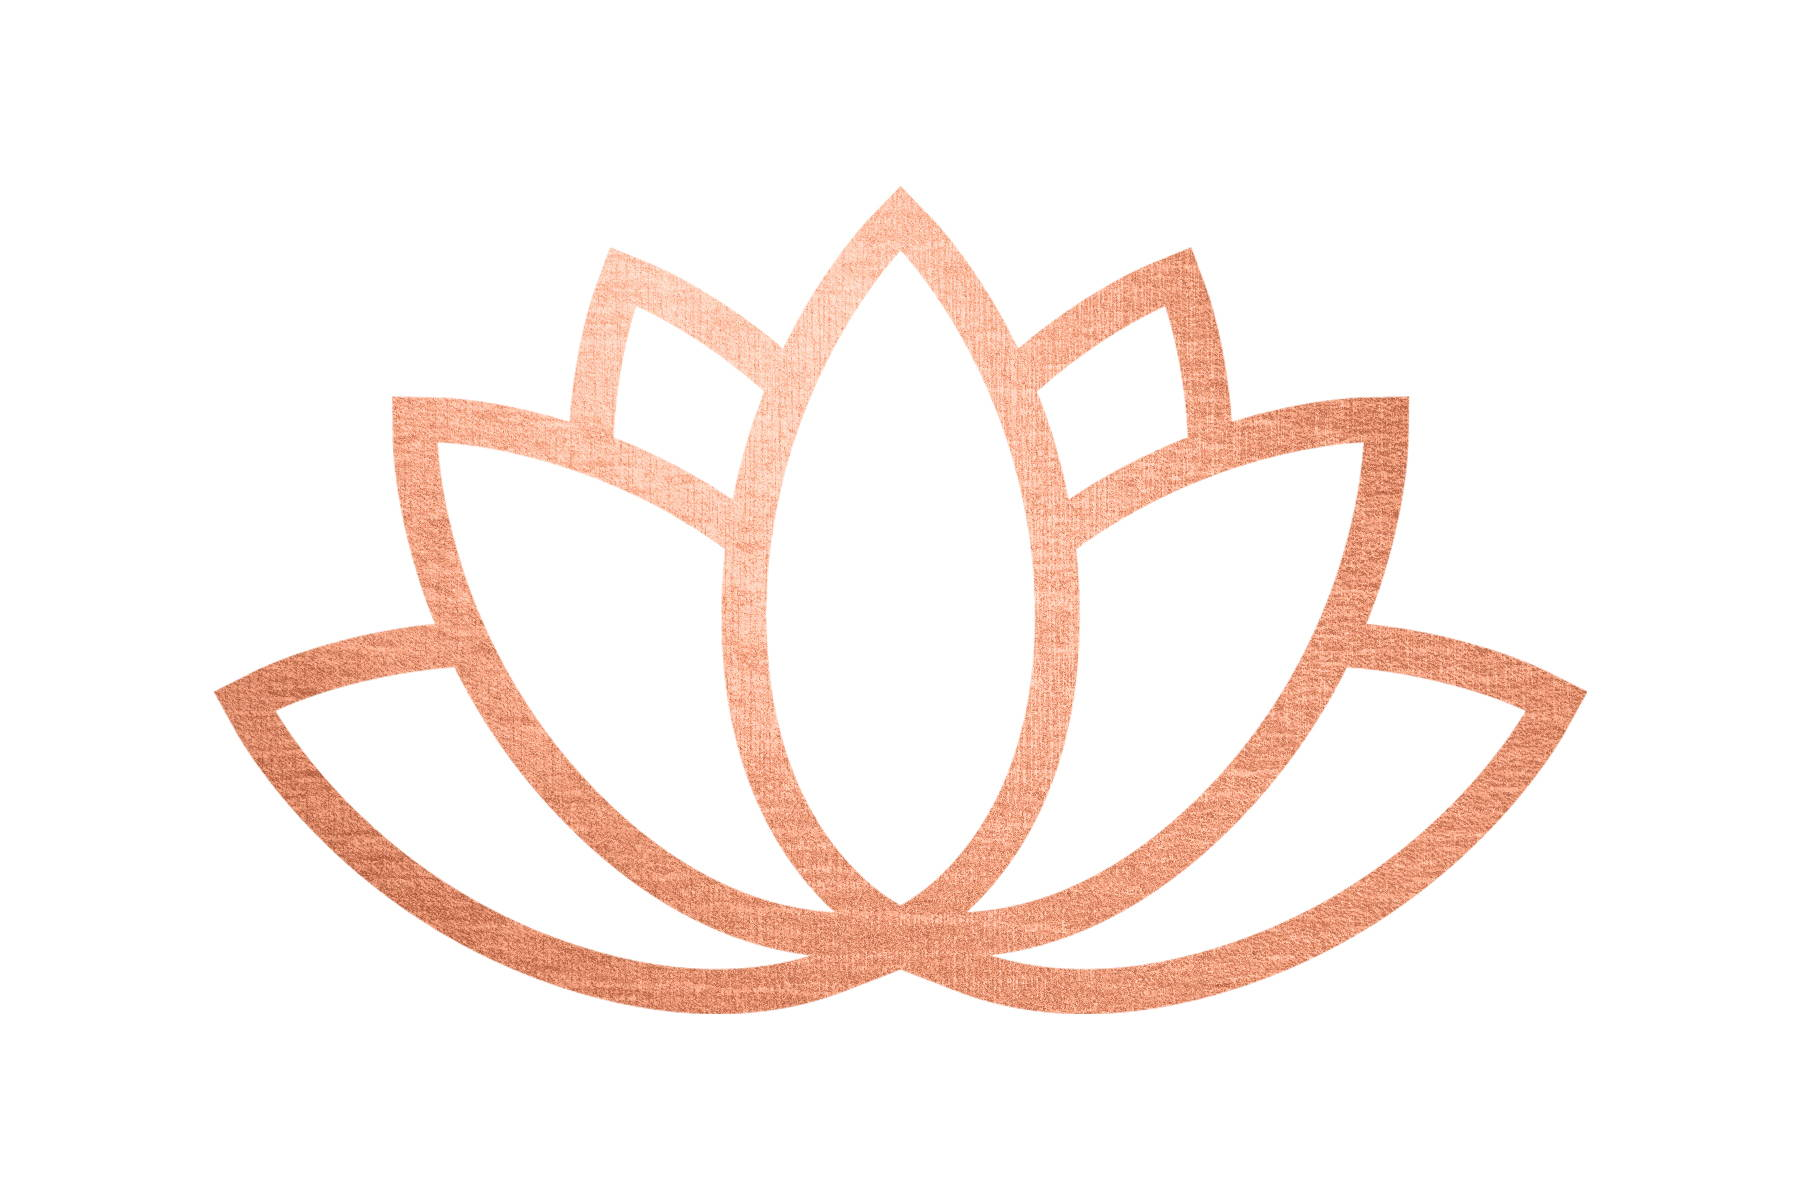 lotus flower skincare skin cosmetics products facial creams moisturiser organic vegan certified organic cruelty free sustainable eco friendly highly concentrated reiki reiki infused reiki energy organic